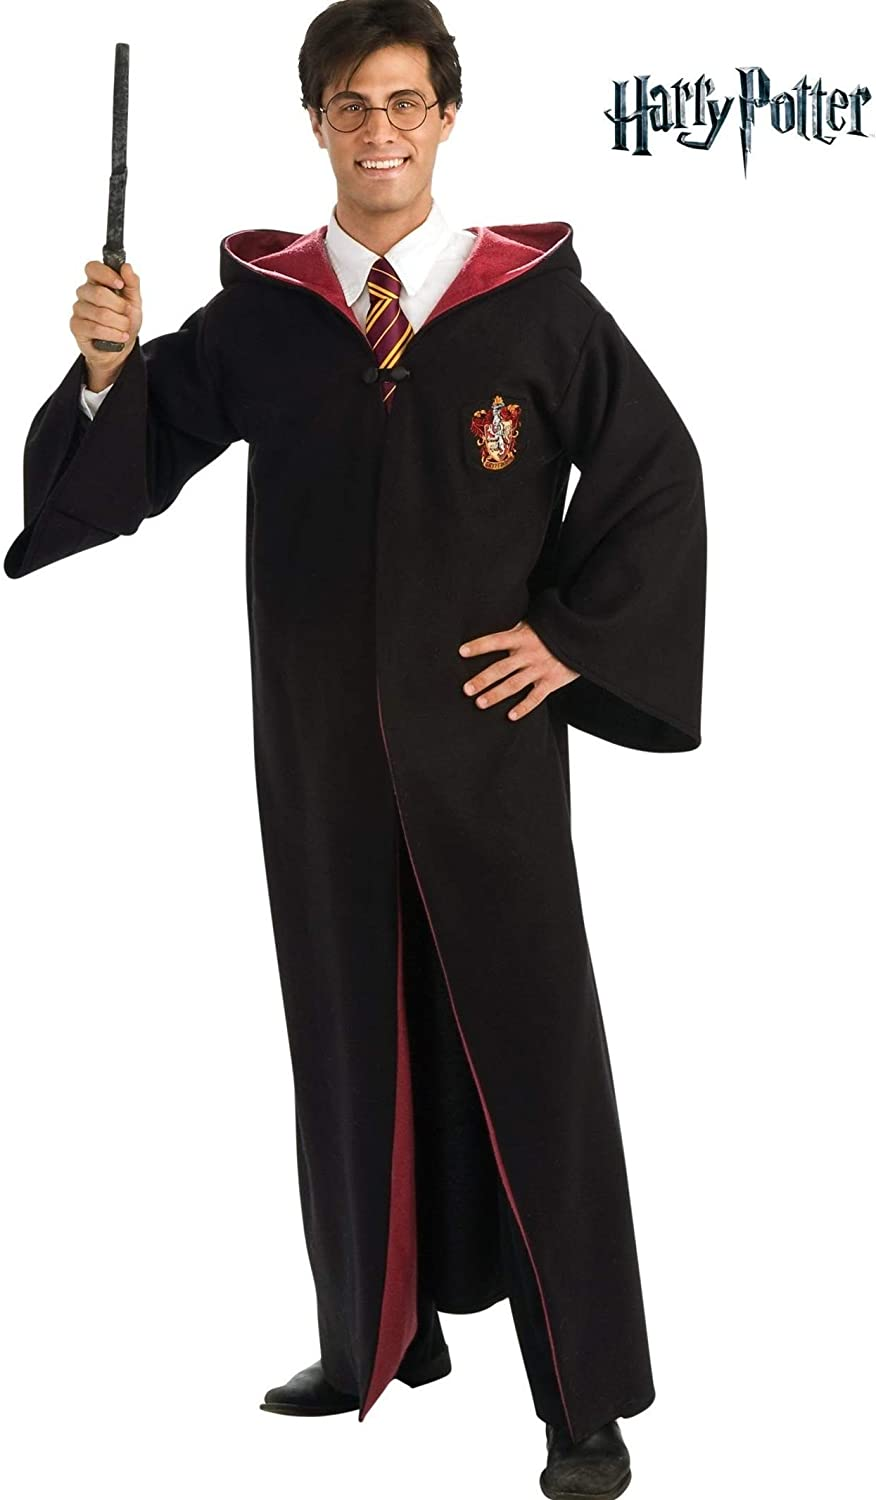 Harry Potter Deluxe Robe - Disfraz, talla M: Amazon.es: Juguetes y ...